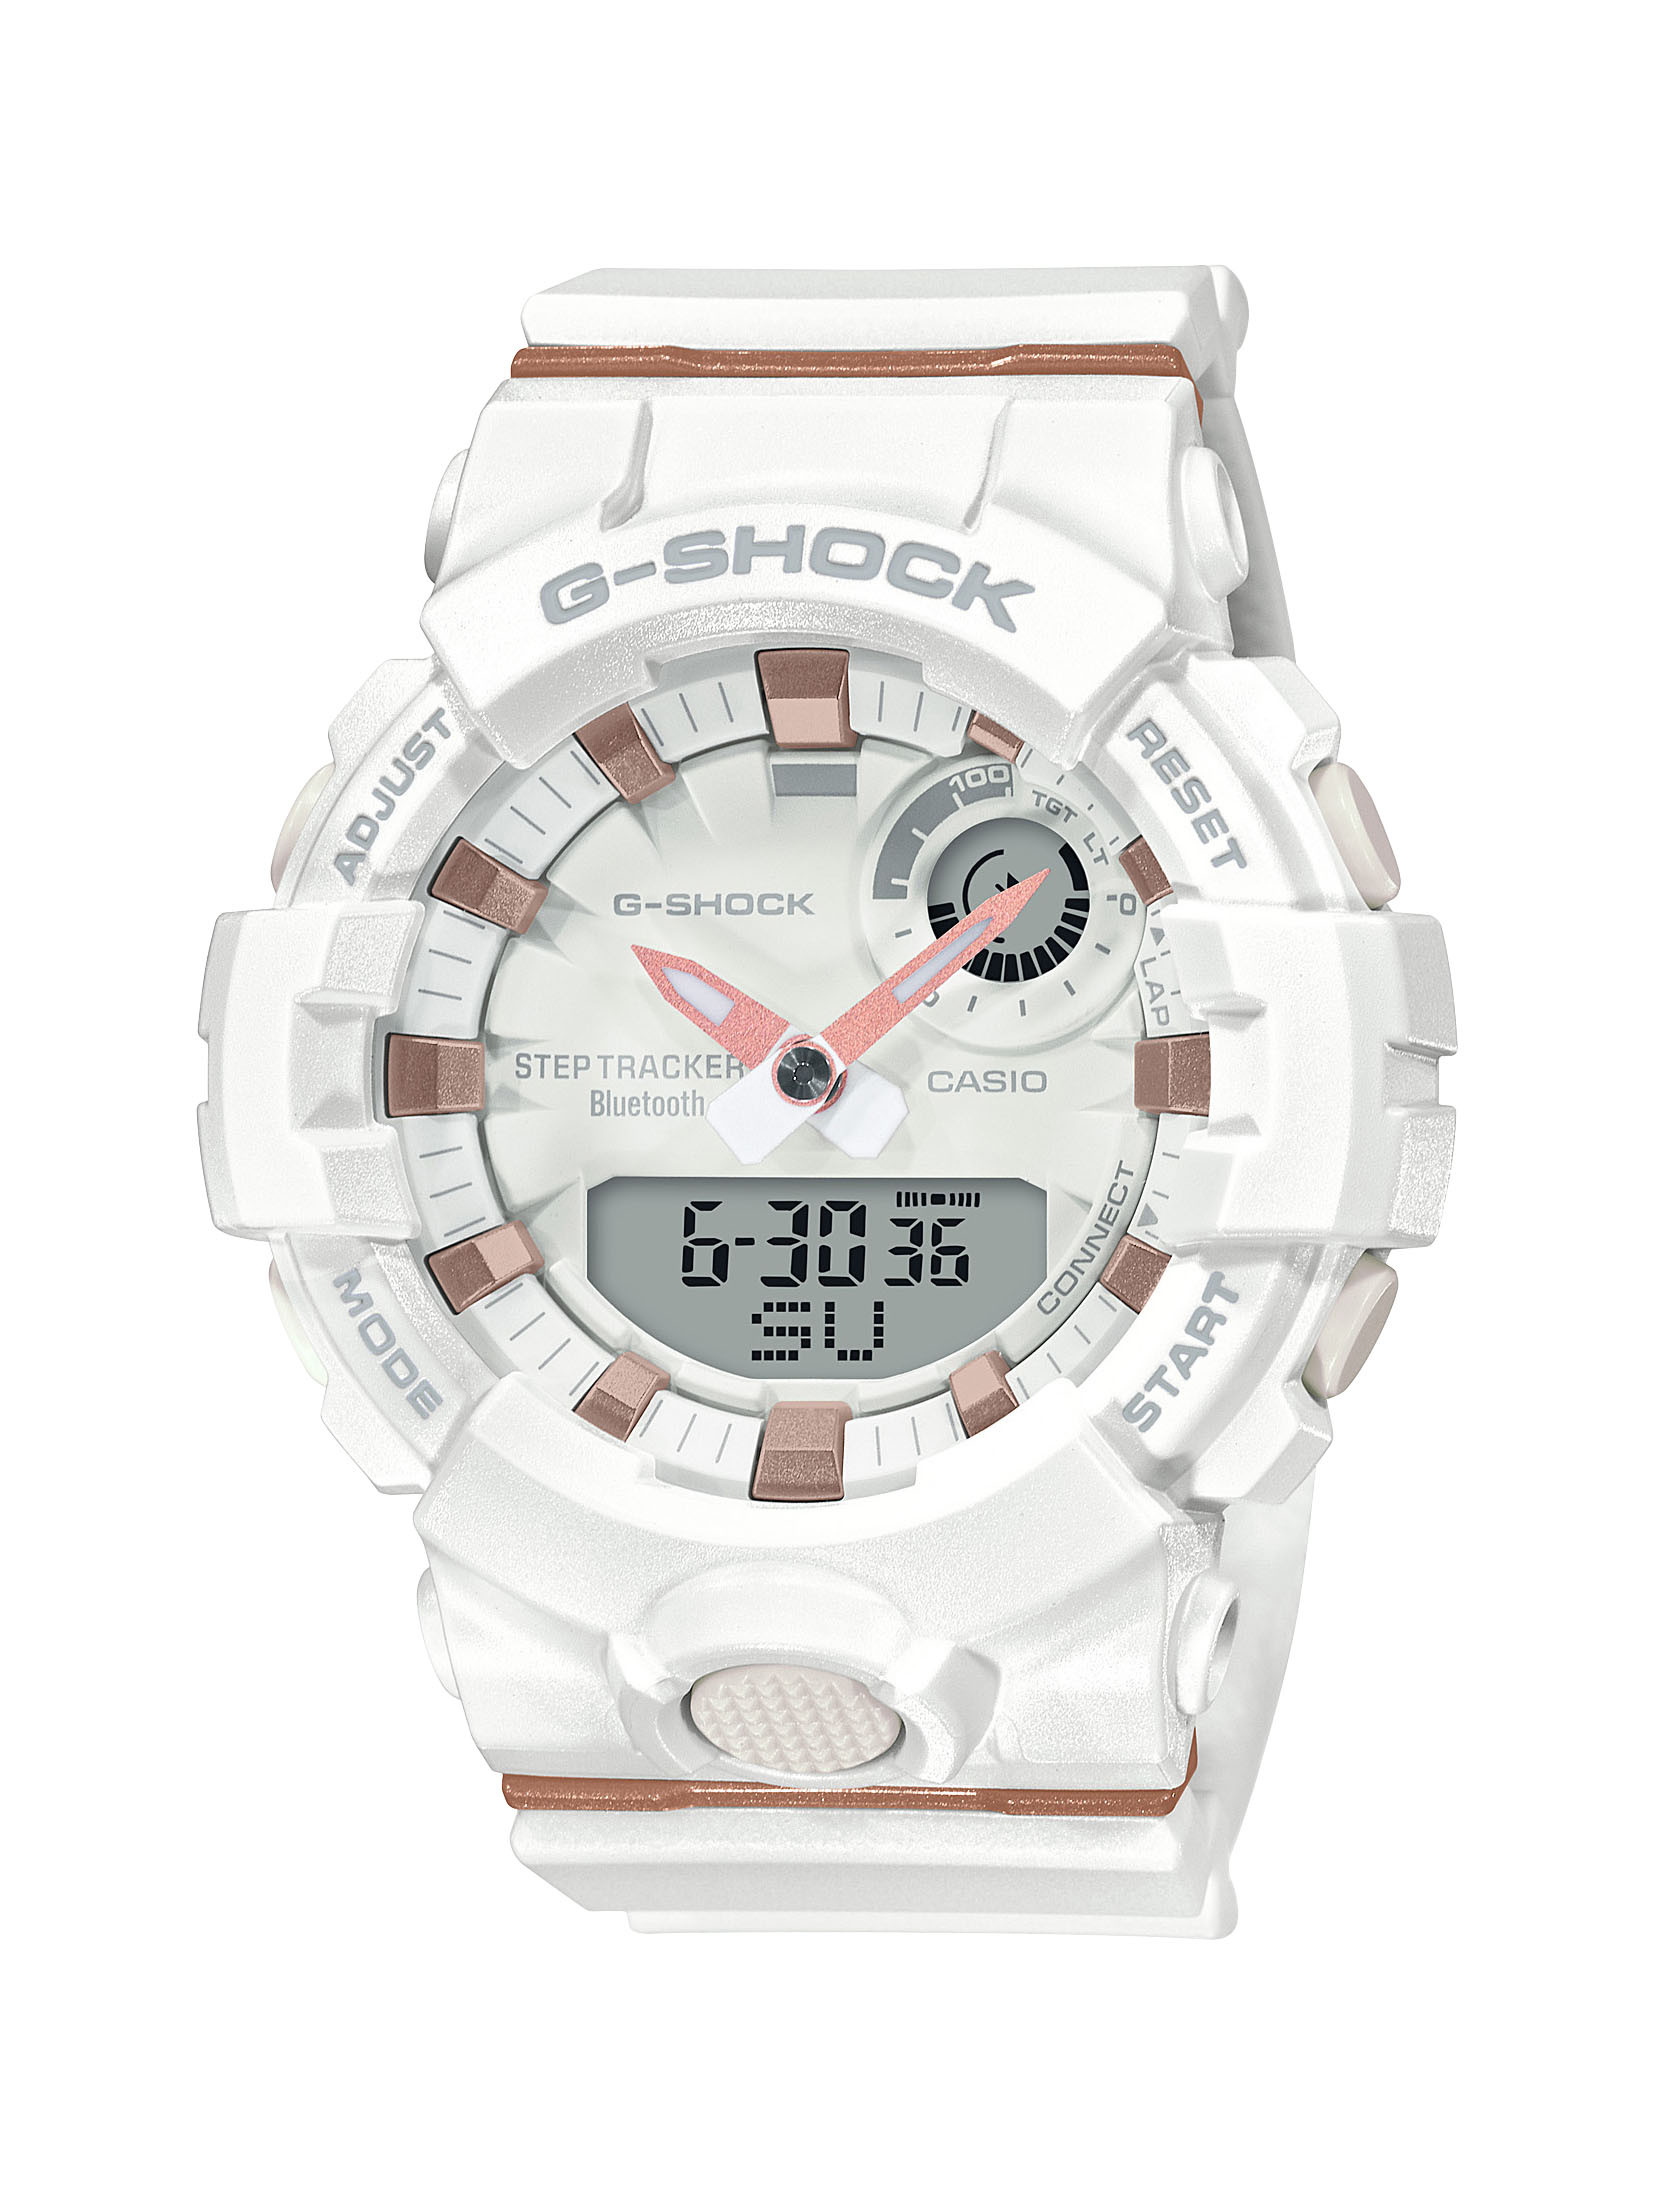 G-SHOCK S-Series Analog Digital White Watch with Rose Gold